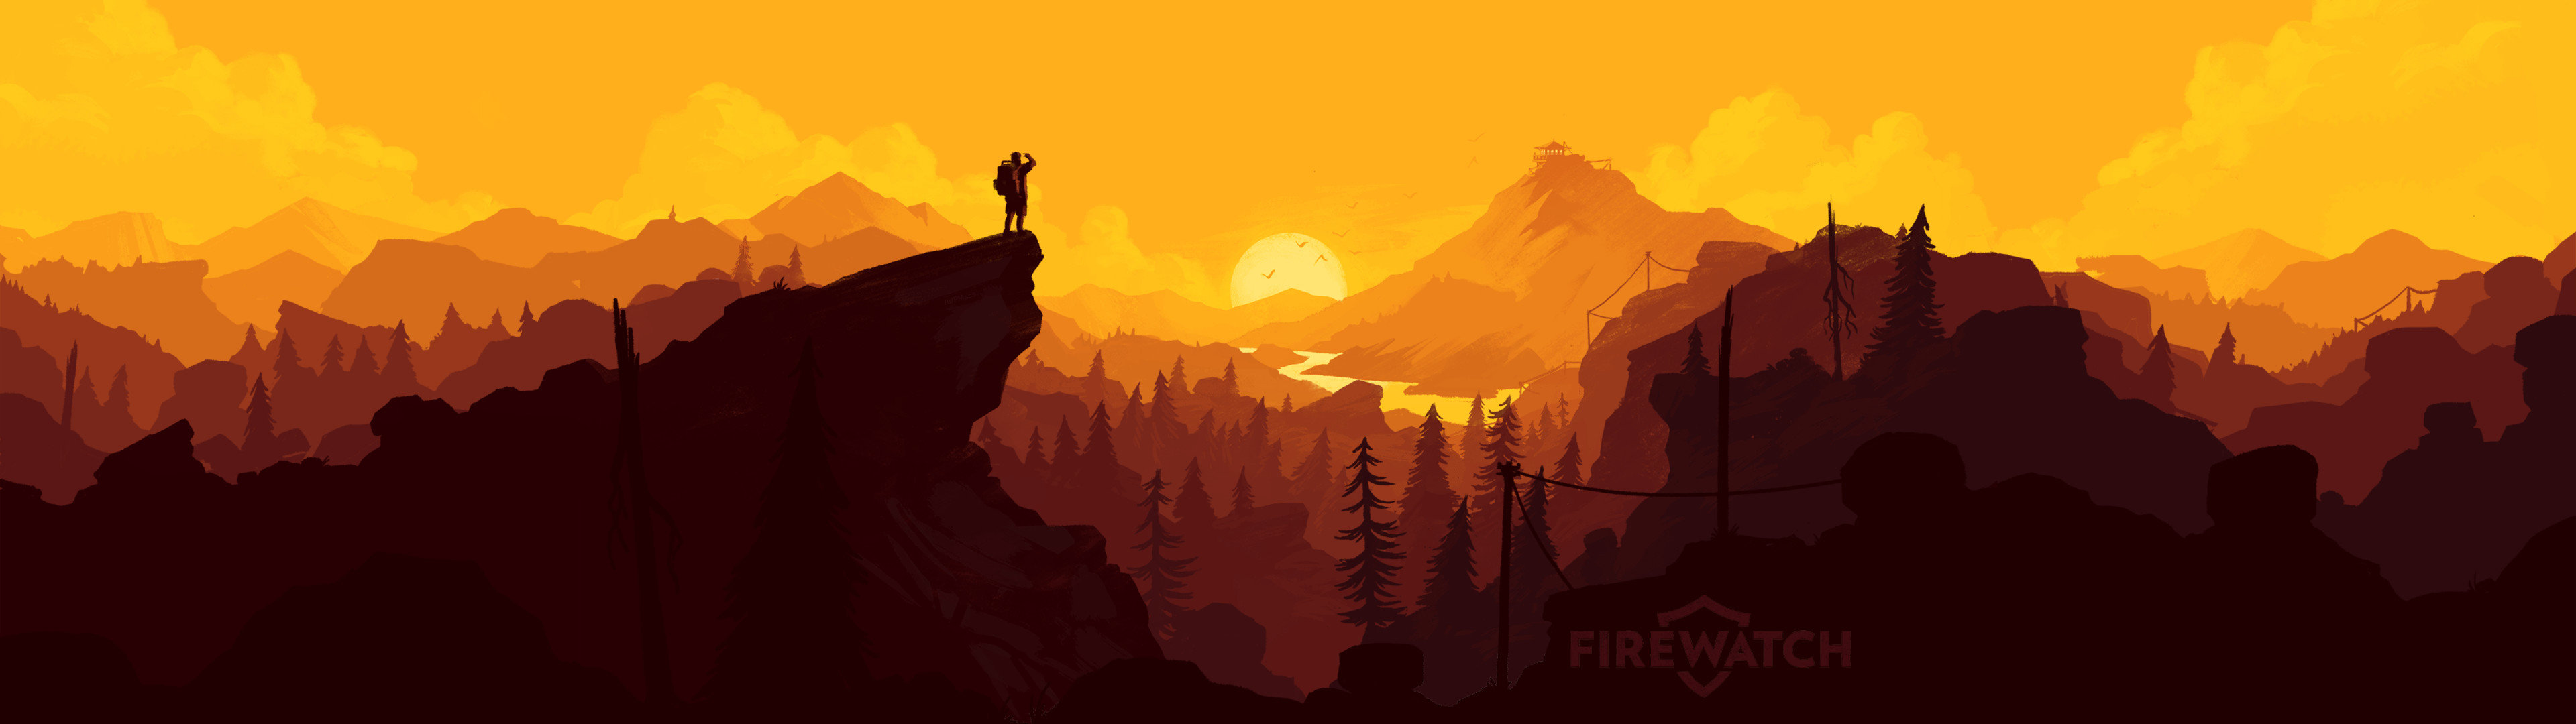 Dual monitor Firewatch wallpapers, HD backgrounds